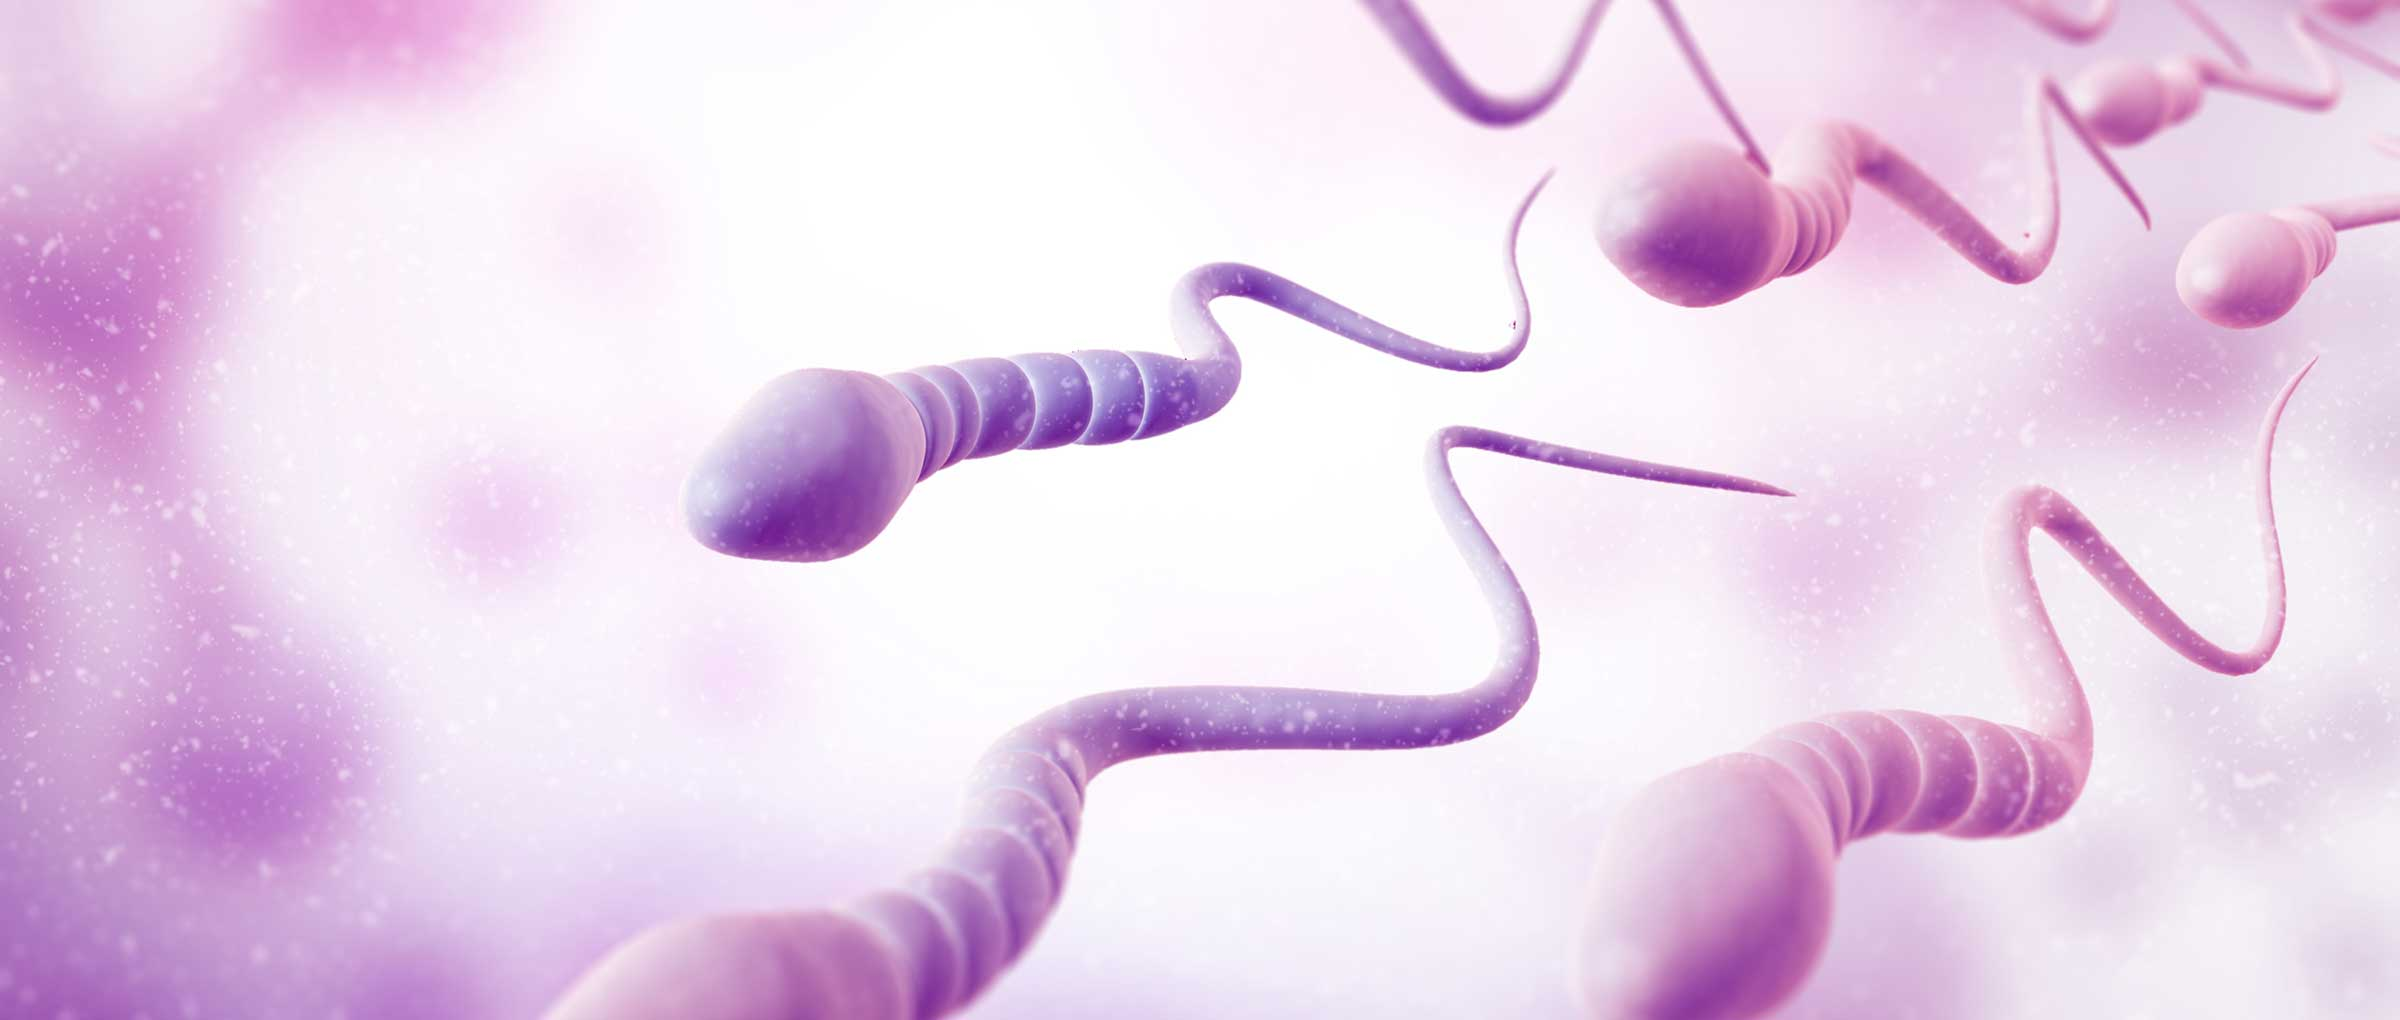 Apoptotic sperm in the ejaculate